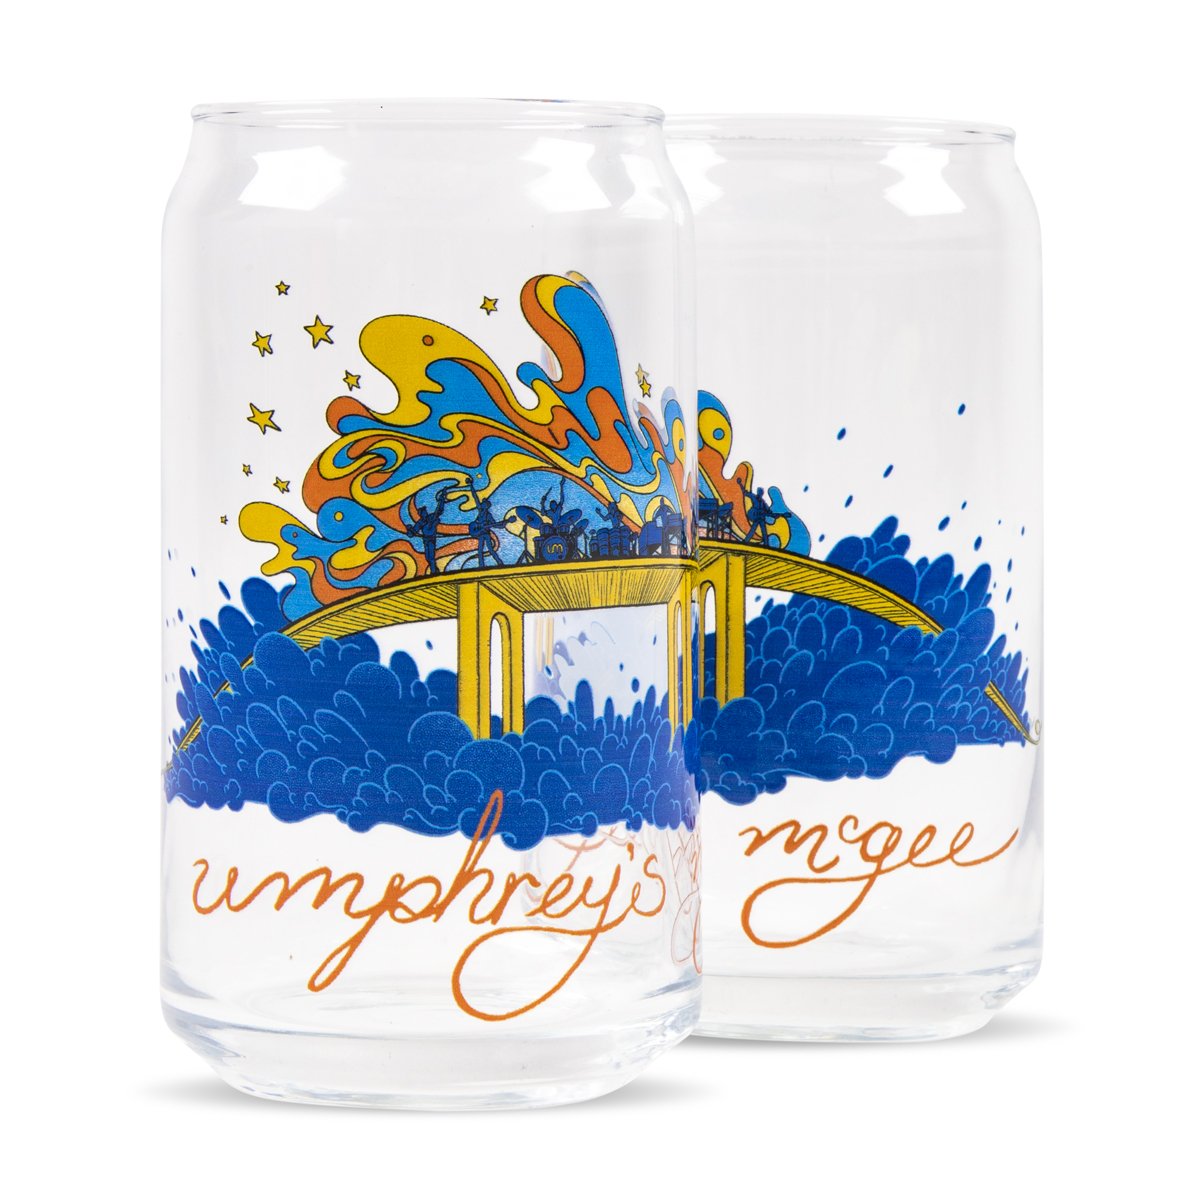 James Flames Can Pint Glass Set of 2